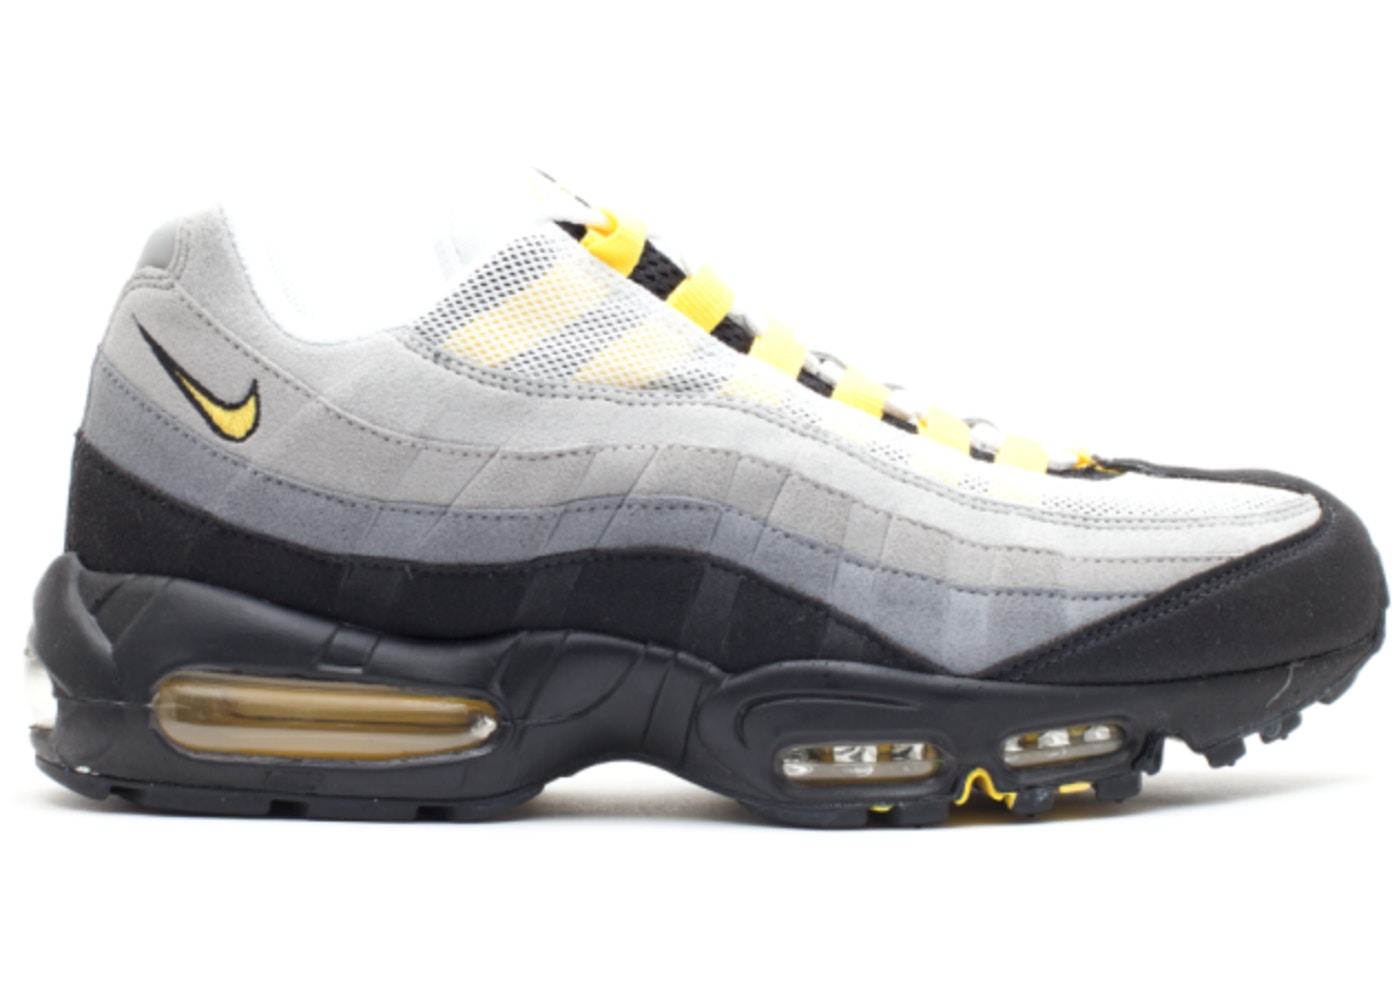 Pef Agotar Contratación  Nike Air Max 95 Tour Yellow Grey - 609048-105